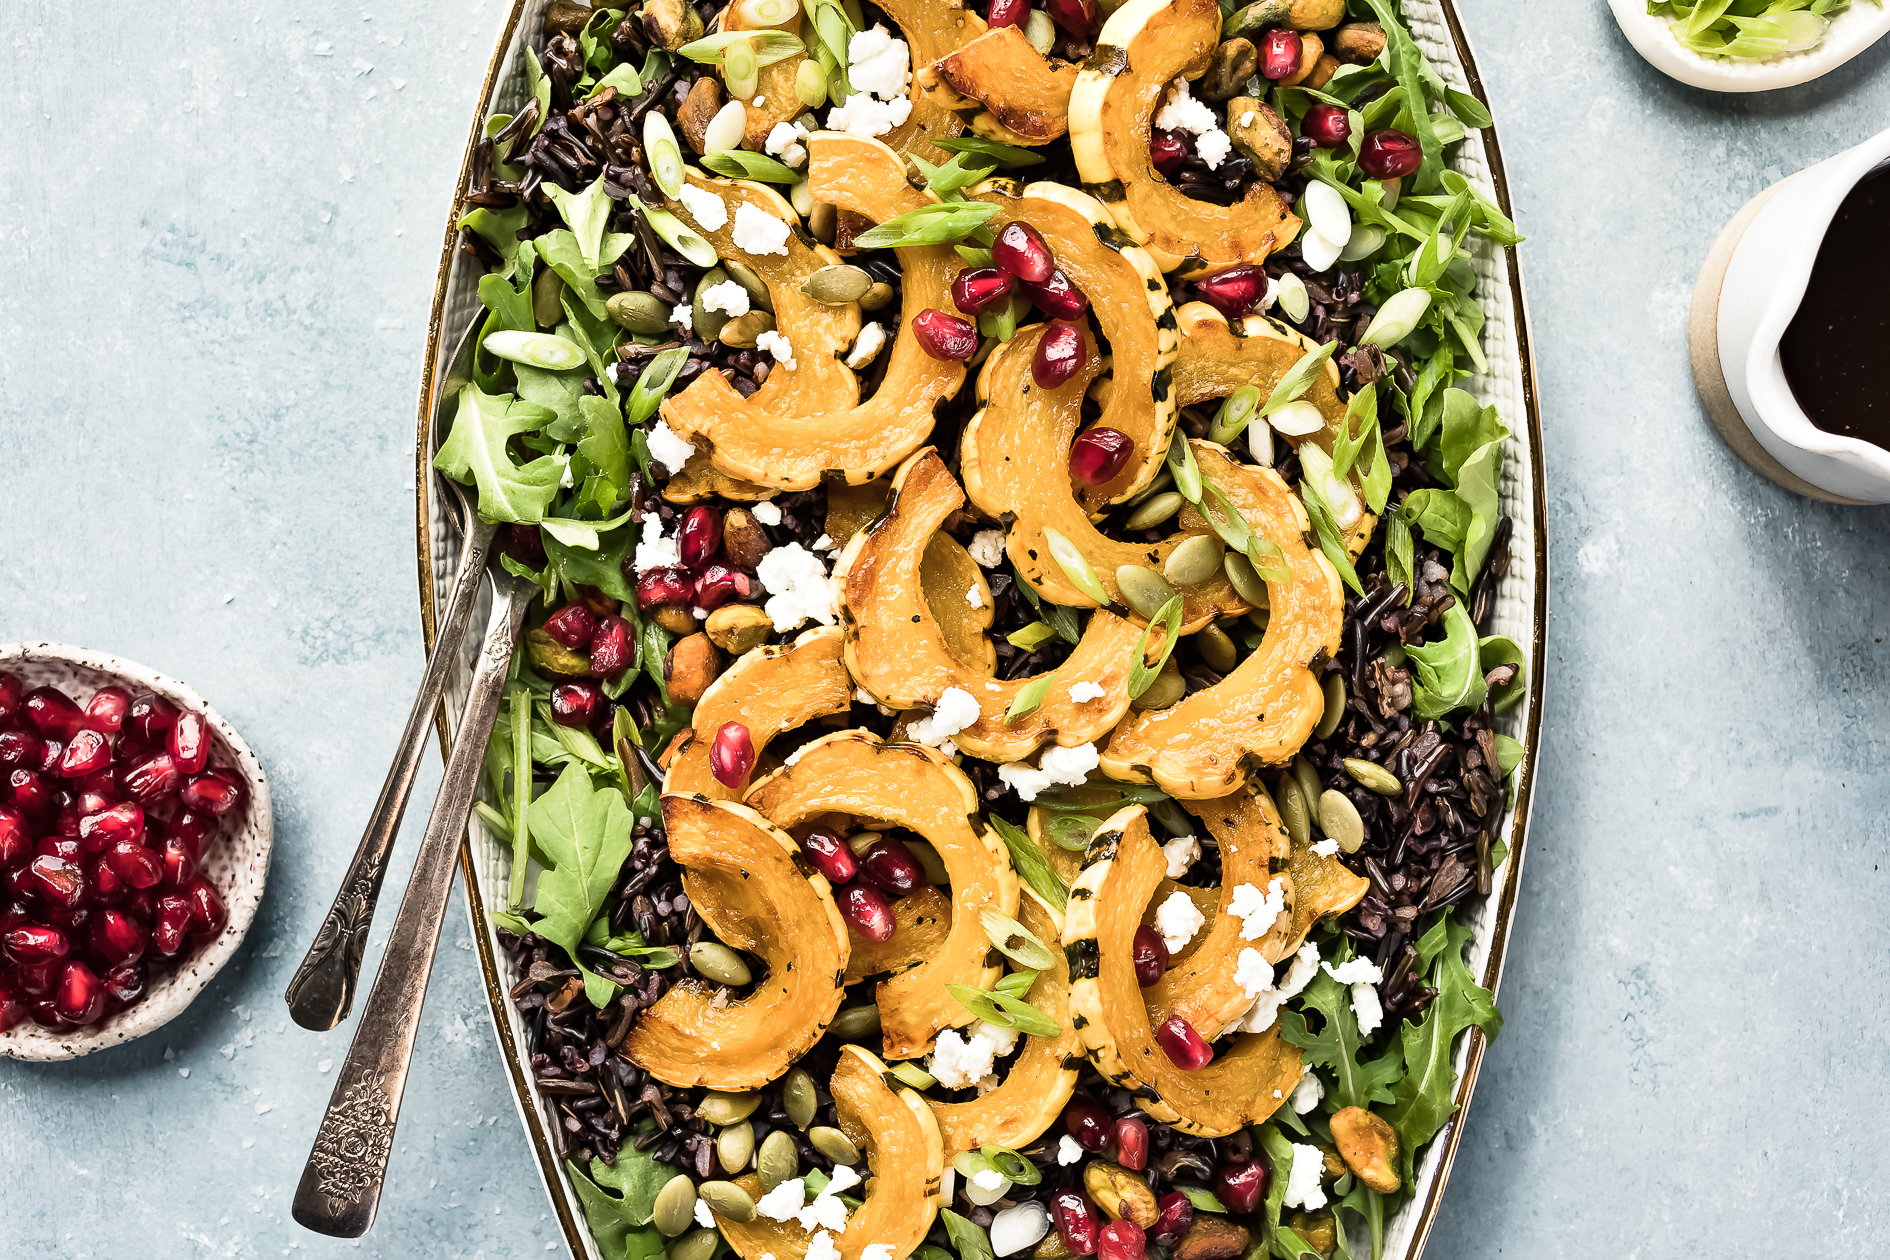 Overhead photo of Wild Rice Salad featuring roasted delicata squash, pomegranate arils and sliced scallions on a white platter with serving spoons inserted into the salad; and ramekins of pomegranate arils, sliced scallions and a small container of honey balsamic vinaigrette arranged around the salad.